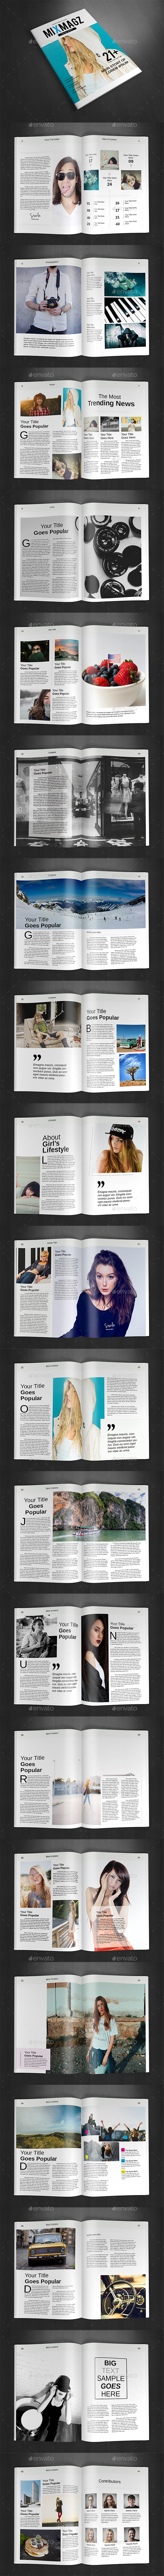 A4 Magazine Template Vol.29 - Magazines Print Templates